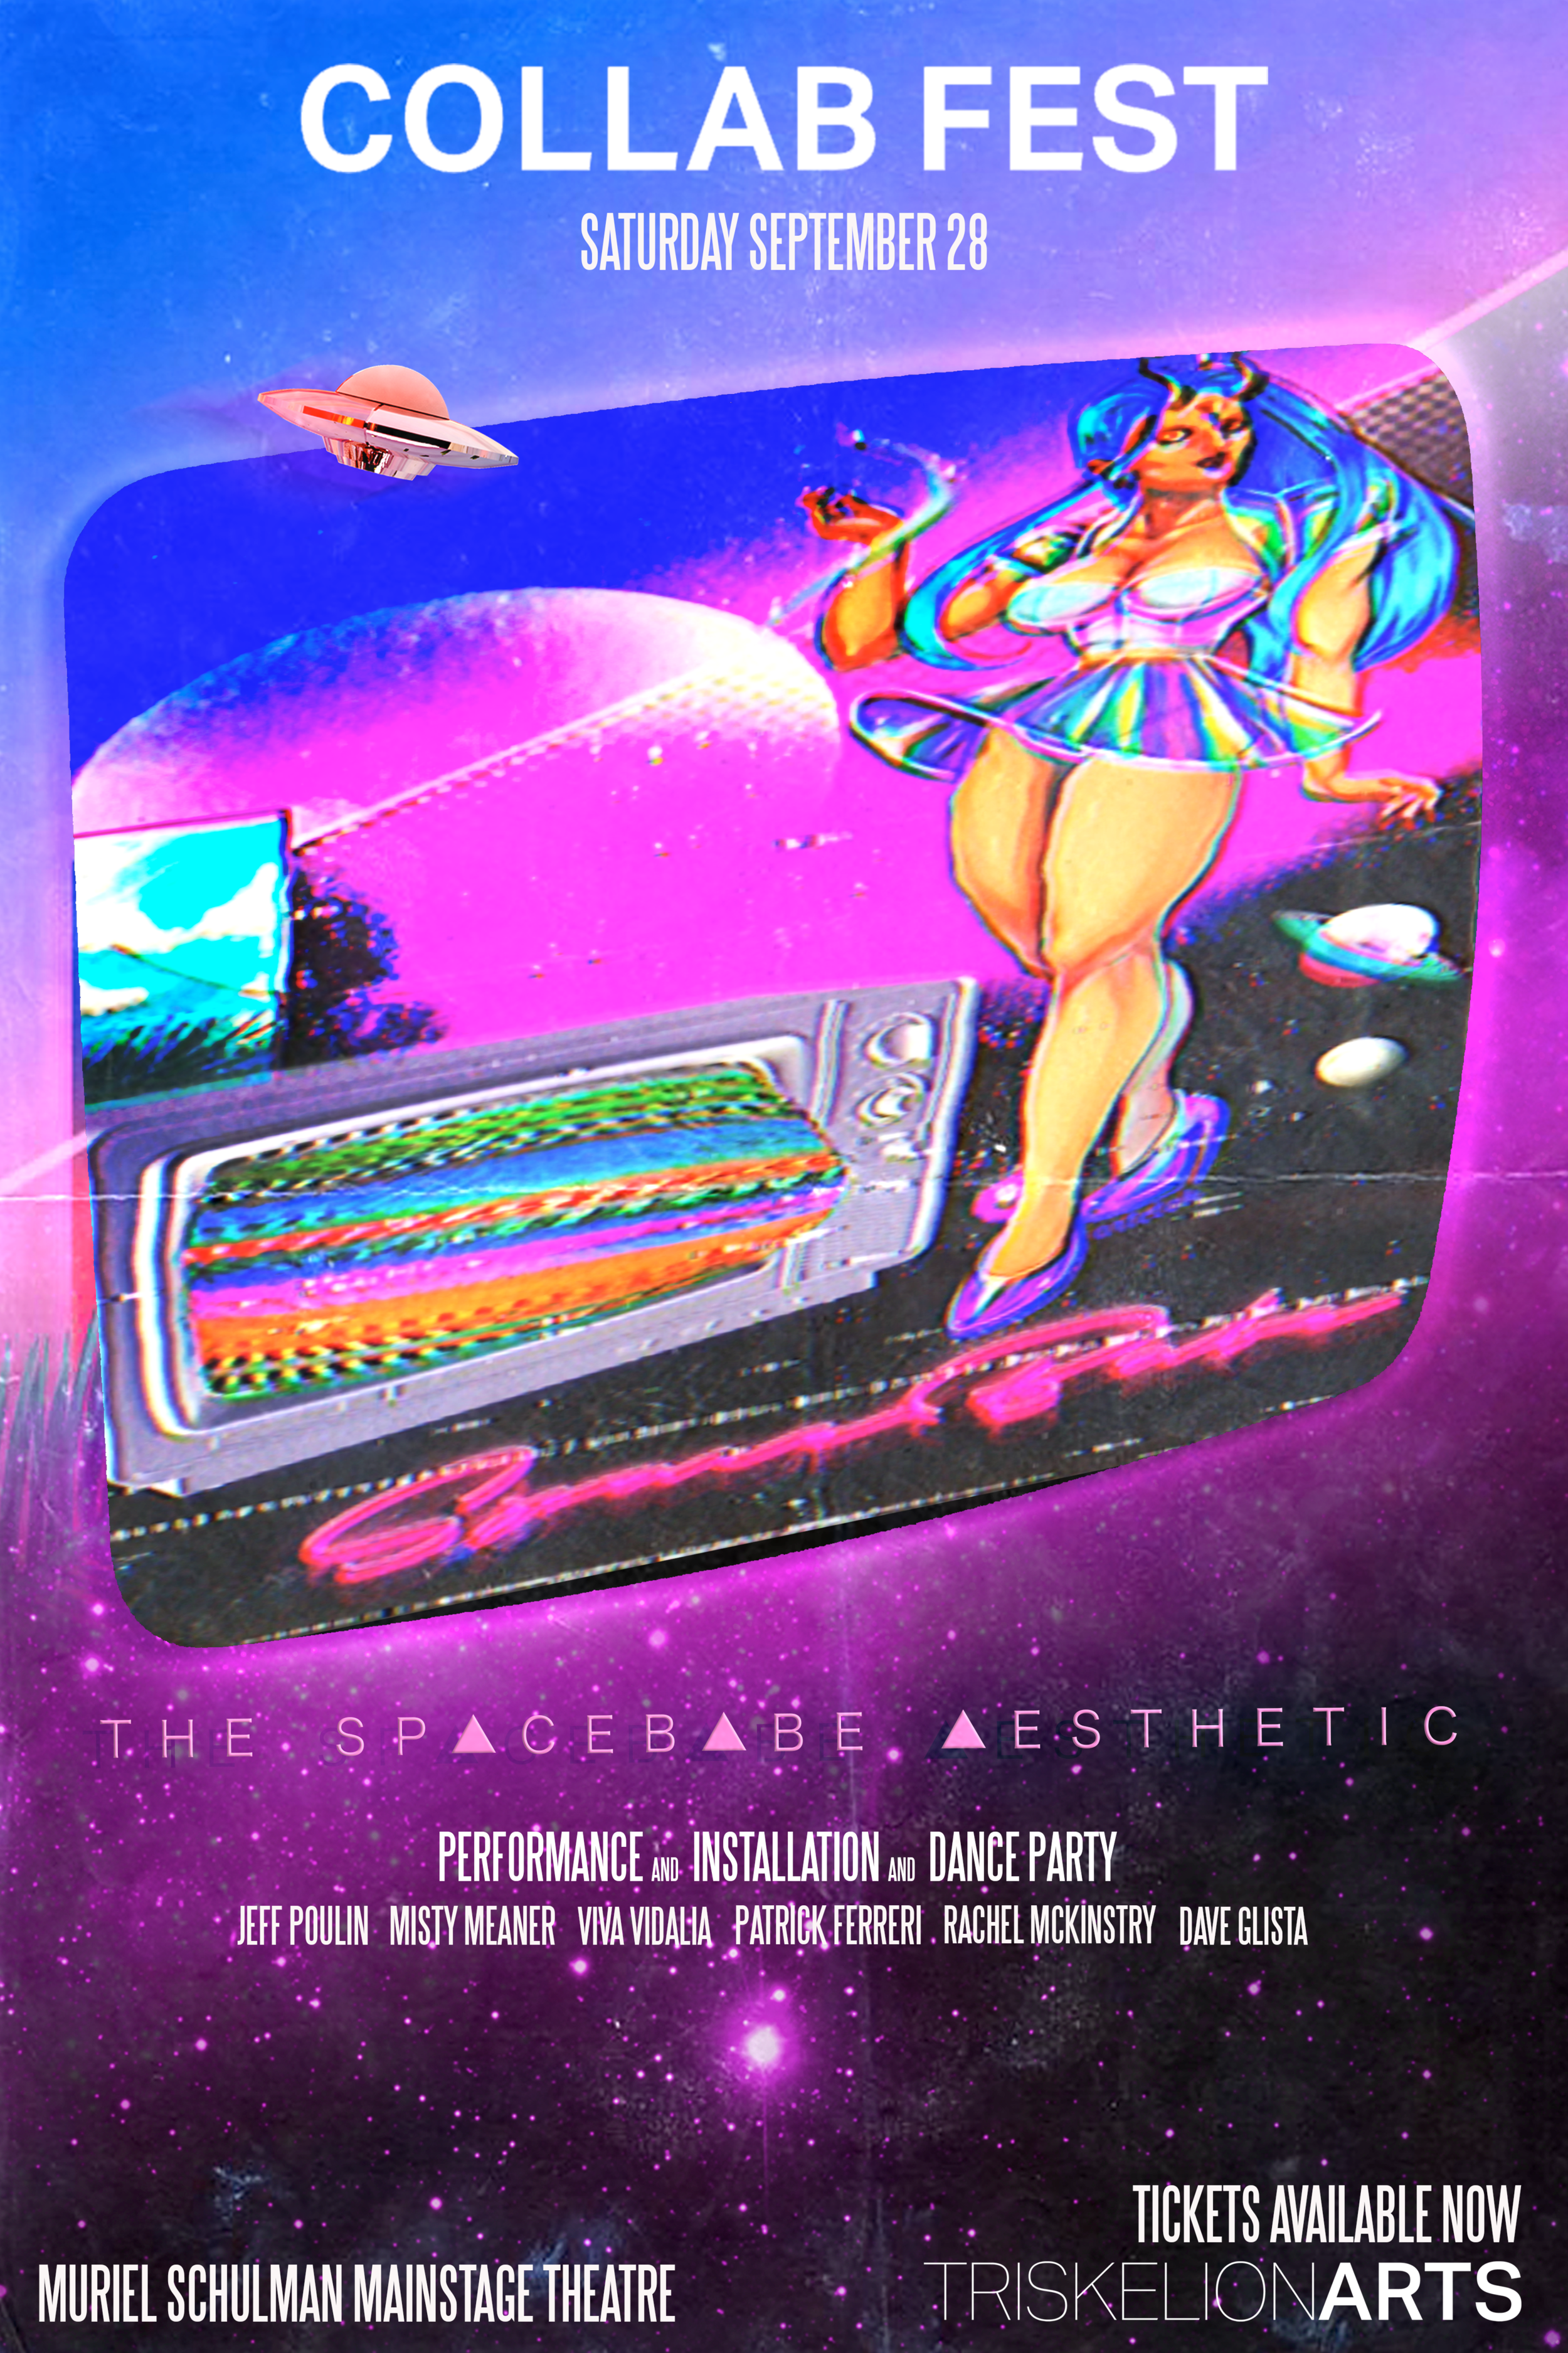 A nostalgic romp through a distorted memory of proto-consumerism… - A nostalgic romp through a distorted memory of proto-consumerism, Spacebabe leads our audience down a rabbit hole of cassette futurism and mallsoft muzak with the hazy aesthetics of adolescence in an emerging hyper-networked cyber world.A plunderphonics of digital vignettes are loosely tied together by live and pre-recorded performances that will move the space through flickering transmissions of a late night lo-fi cable movie marathon circa 1993.Traditional drag performances are accented with projection art and sound design, as well as modern dance, custom lighting, and interactive stage elements that bring the audience into the event.Performers will guide our patrons from party to performance and back again, leaving our dear spectators-come-collaborators to beg the questions 'What the hell was that?', 'Who is Spacebabe?', and 'Where are my keys?'.LEARN MORE ABOUT SP▲CEB▲BE